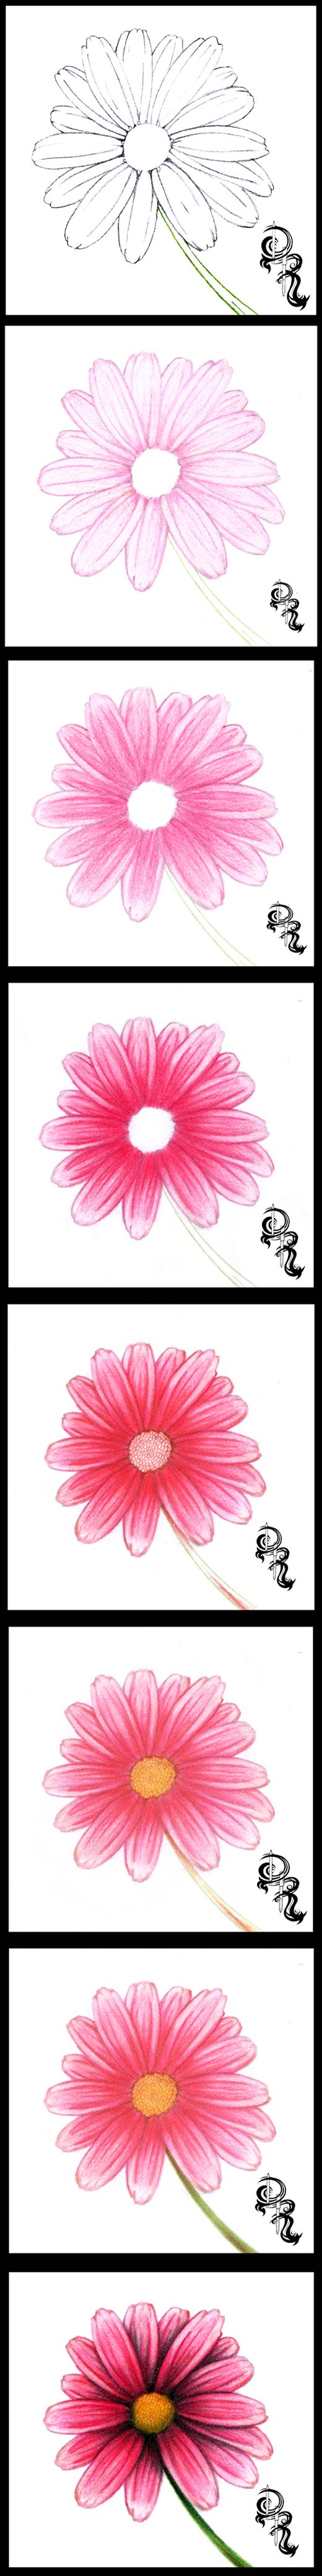 How To Draw A Daisy With Colored Pencils A Stepbystep Image Of A Colored  Pencil #artlesson By Derrick Rathgeber Click The Image For Full Detai…